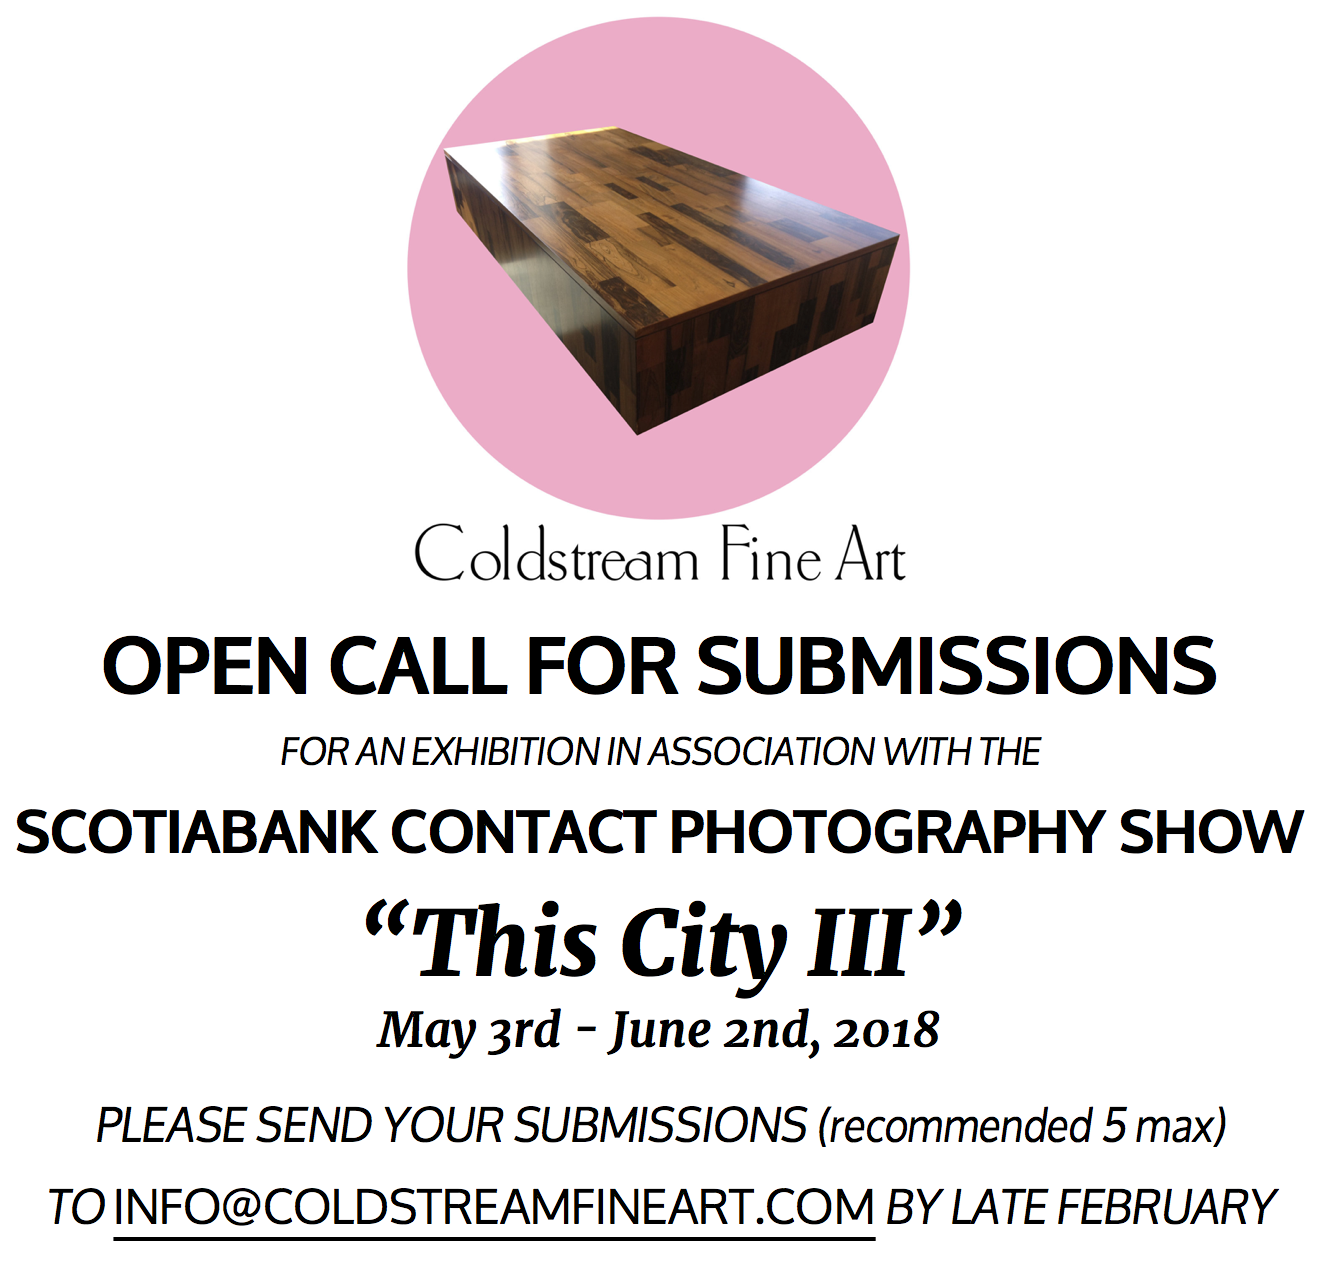 "We're reaching out to photographers to let you all know that we're planning to host a photography exhibition in May that will be a follow-up to the last two years' group photography exhibitions at Coldstream Fine Art:   This City   .  Toronto is a city currently experiencing rapid growth and both subtle and overt transformations right before our eyes. We are challenging photographers with diverse styles, backgrounds and techniques to one equal task: submit a photograph that represents this city through your eyes.   This year's exhibition will build upon the success of the running exhibition. In May 2016 Coldstream hosted  This City: A Group Photography Show , kicking off the series by featuring twelve Toronto-based photographers with unique and eclectic views of the city. It was followed up in May 2017 with  This City II , exhibiting fourteen photographers with intriguing ways of seeing Toronto through the camera lens.  CBC Arts coverage of This City II:  http://www.cbc.ca/arts/their-challenge-represent-all-of-toronto-in-a-single-photo-1.4094129   The participating artists were asked to submit one or two photos that represent this city, Toronto, to them. What made these exhibitions compelling was the variety of photography on display, all with varying interpretations of the same theme. The shows were both very well-received, commercially successful and succeeded in attracting a large amount of visitors. This year we hope to follow the same rubric, but we are aiming to expand to a larger group of participants beyond last year's fourteen artists. The submission deadline is  Feb 28th . The exhibition will run from  May 3rd to June 2nd 2018,  with an opening reception planned for  Thursday, May 3rd from 6 to 9pm .  We plan to register the exhibition with the Scotiabank CONTACT Photography Festival and apply to be one of their ""featured"" exhibitions, which would bring a lot more exposure and visitors to the exhibition. If we aren't selected to be a featured exhibition, though, we will still be part of CONTACT as an ""open"" exhibition. You can check out the CONTACT website if you're not familiar:  http://scotiabankcontactphoto.com   Please let us know this week if you would like to make a submission for this year's installment. More detailed information will follow and we can answer any questions you may have, so please don't hesitate to reach out. And please feel free to recommend other people you think are talented and might be interested. Looking forward to seeing all of your great submissions!   Submit to:  info@coldstreamfineart.com"